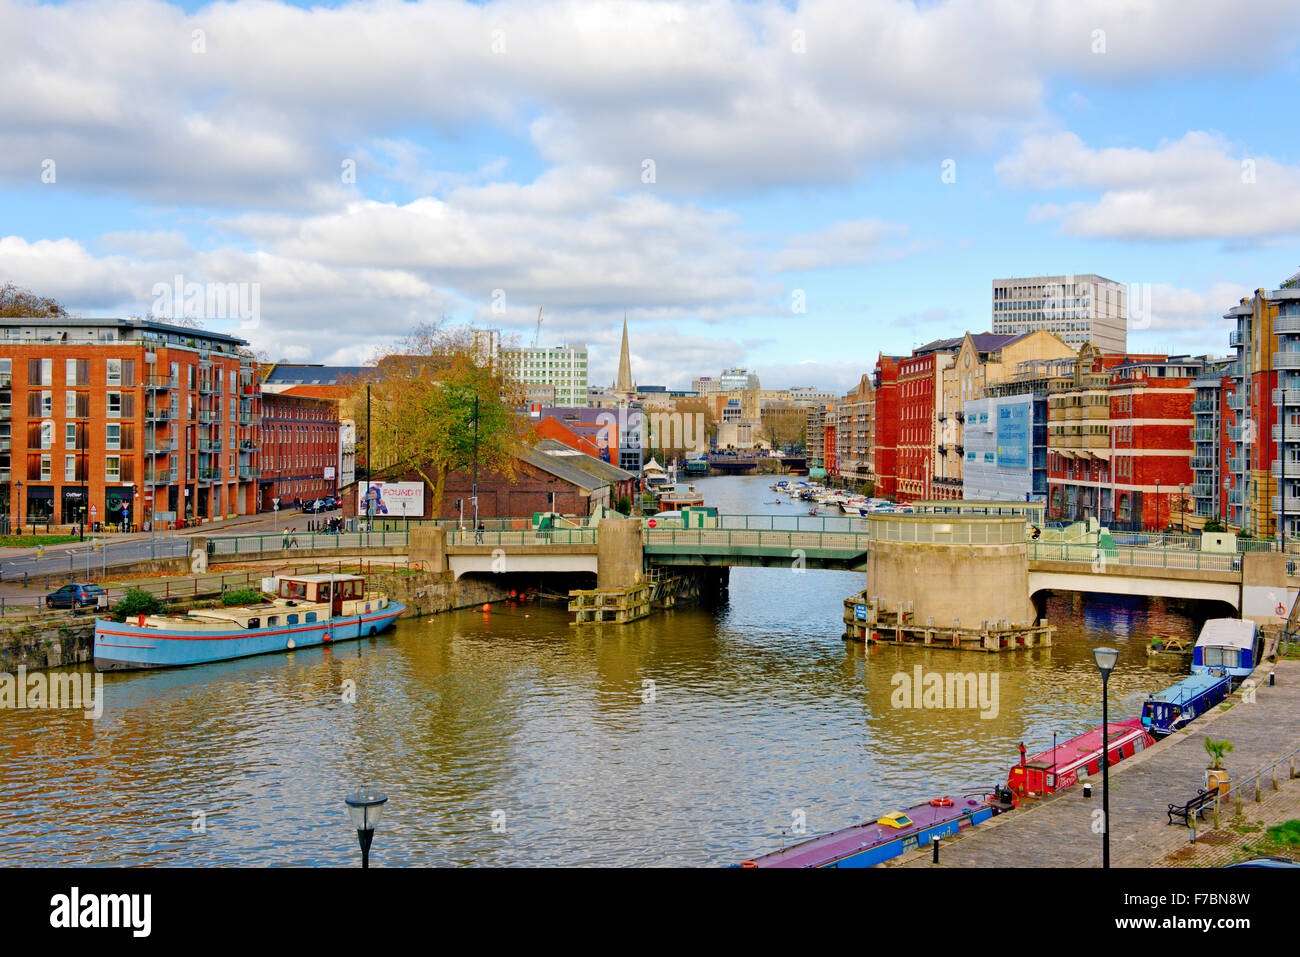 Bristol Floating Harbour by Redcliff Way bridge and Redcliff Backs, central Bristol, UK - Stock Image